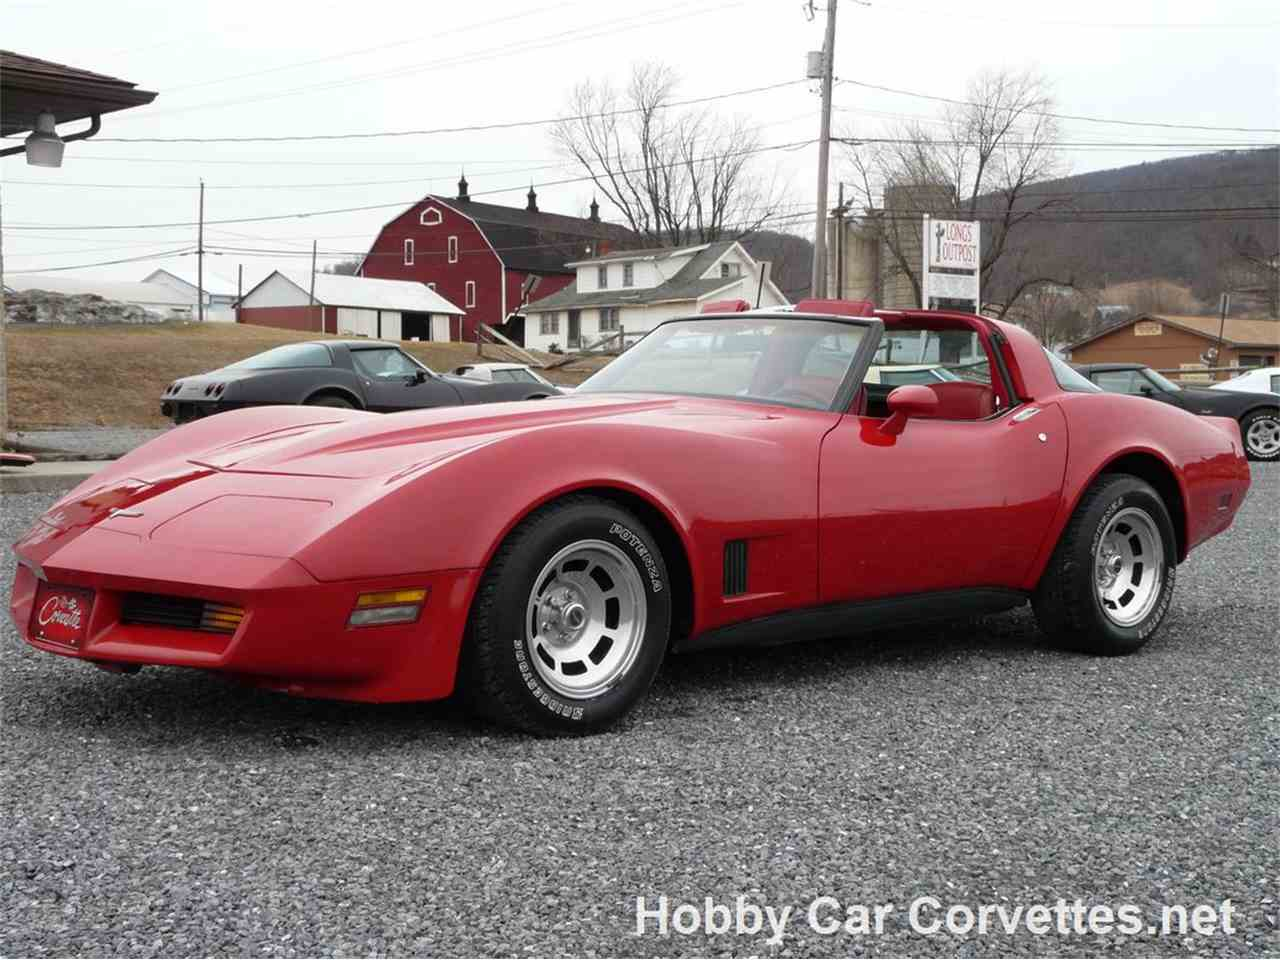 Large Picture of '81 Corvette located in martinsburg Pennsylvania - $17,999.00 Offered by Hobby Car Corvettes - JTPK